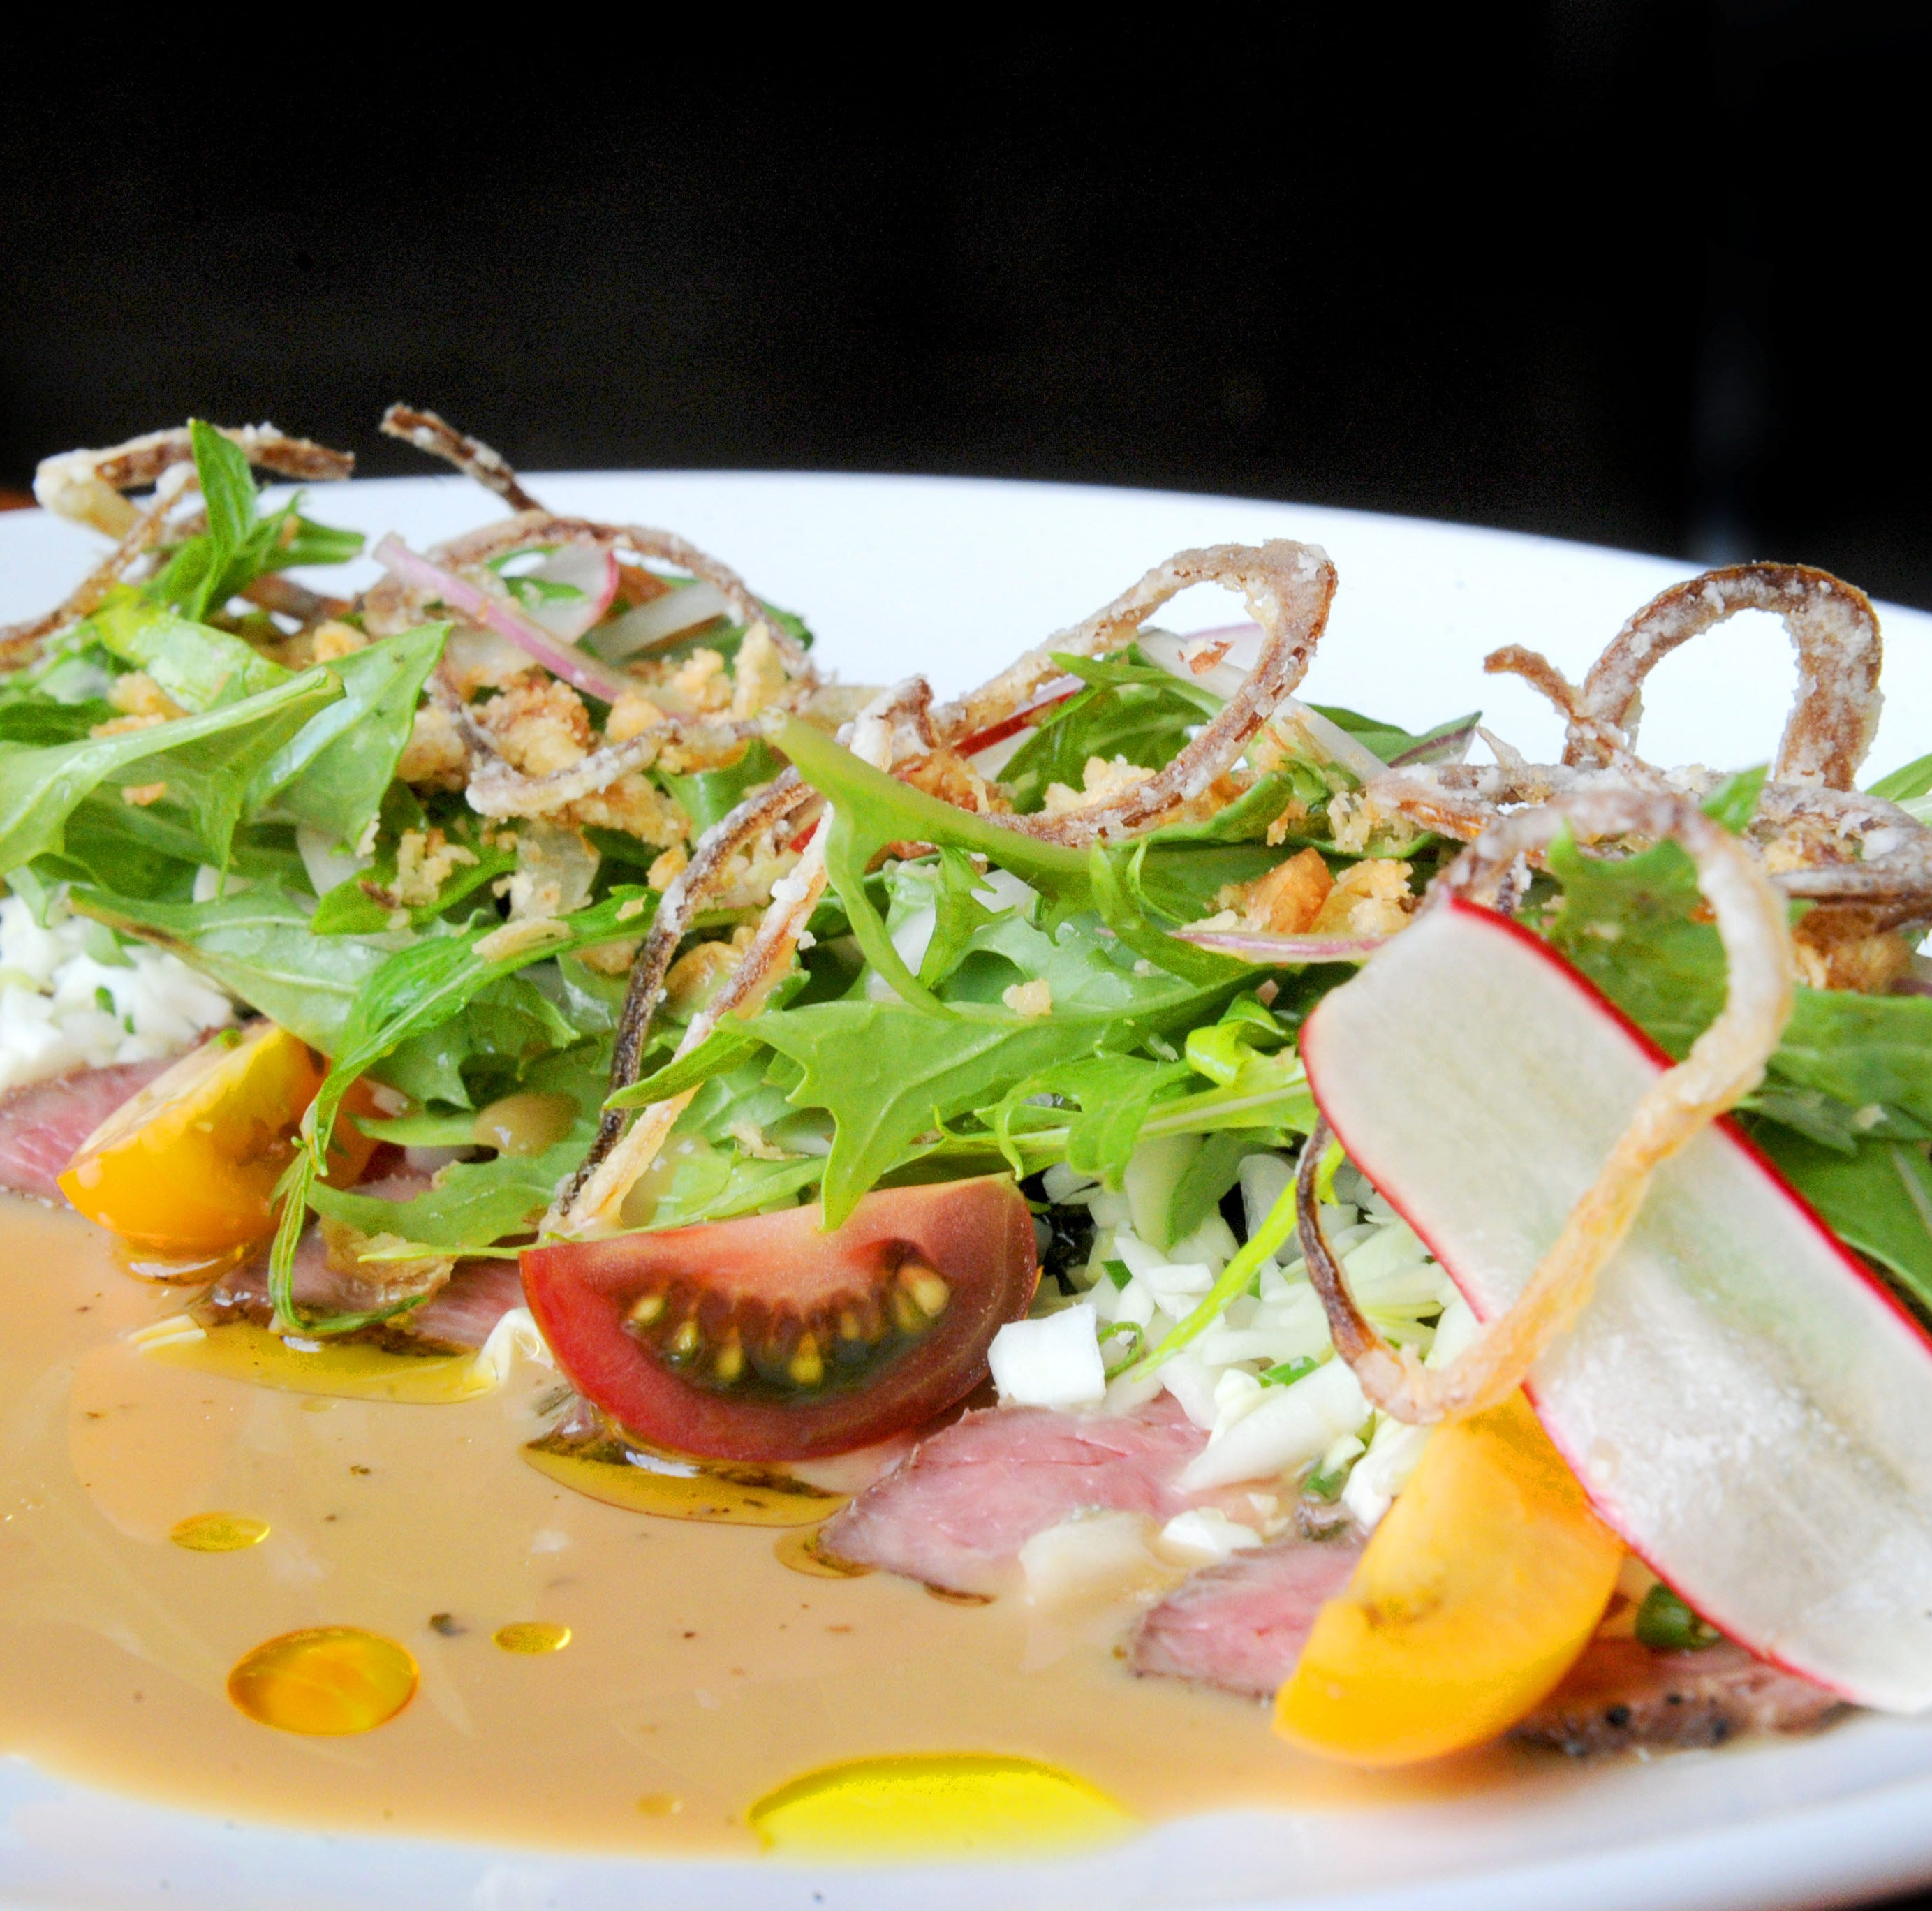 Restaurant review: Pacific by NoRu brings innovation, quality to downtown Ventura